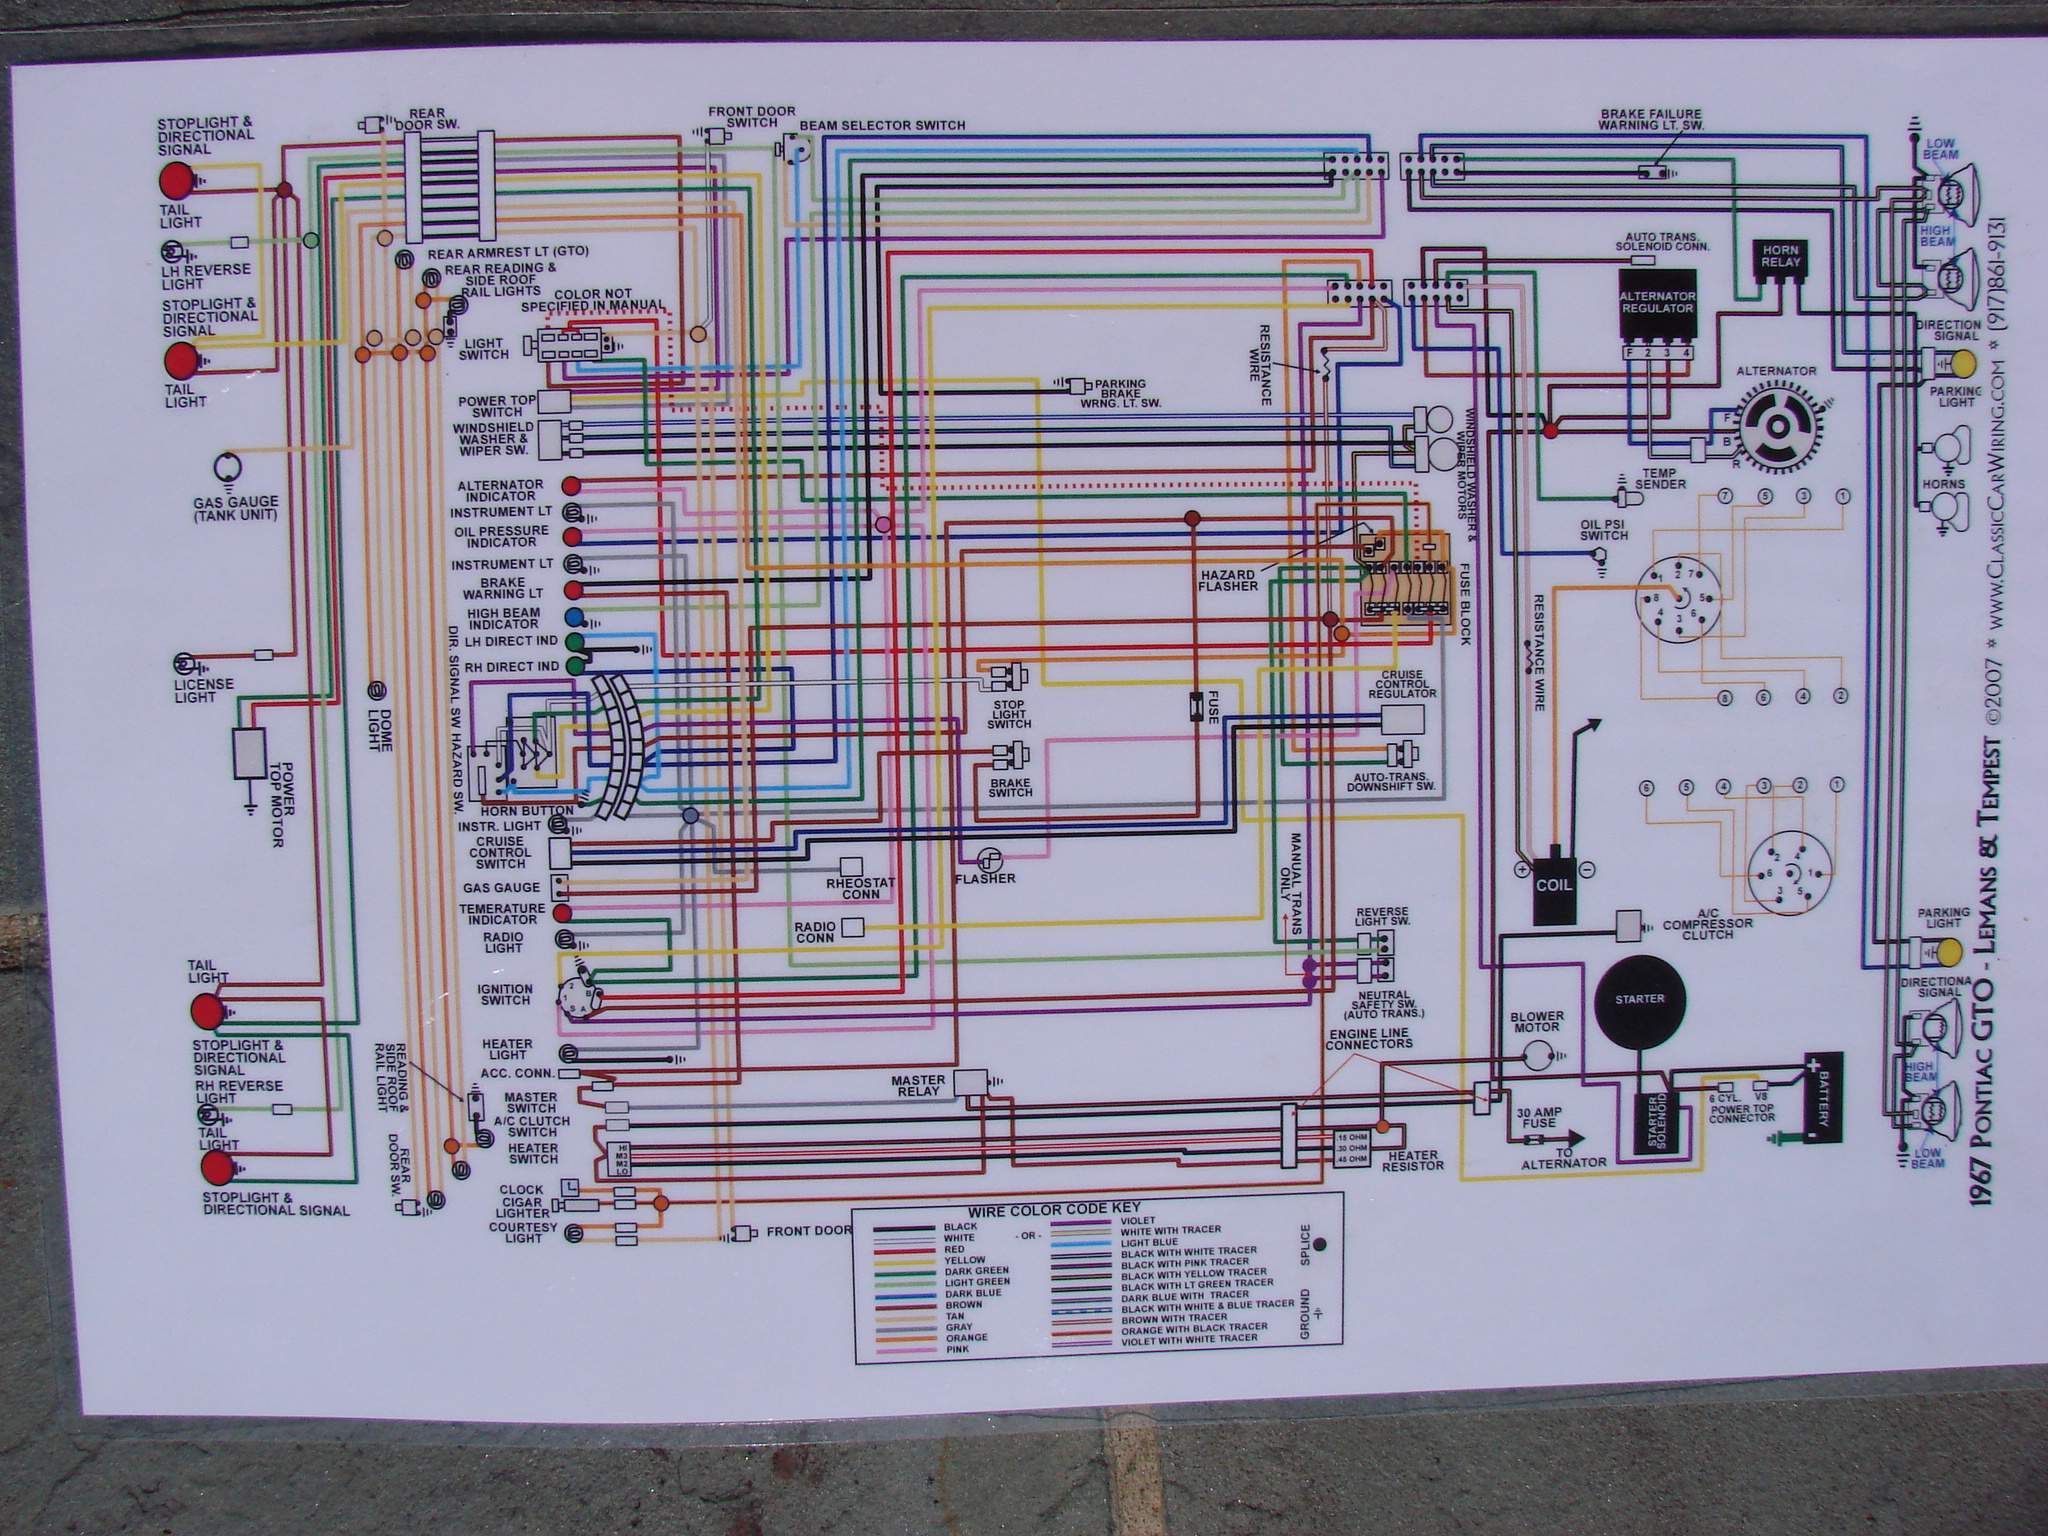 wiring diagram for 1966 chevelle the wiring diagram 1966 catalina wiring diagram 1966 car wiring diagram wiring diagram